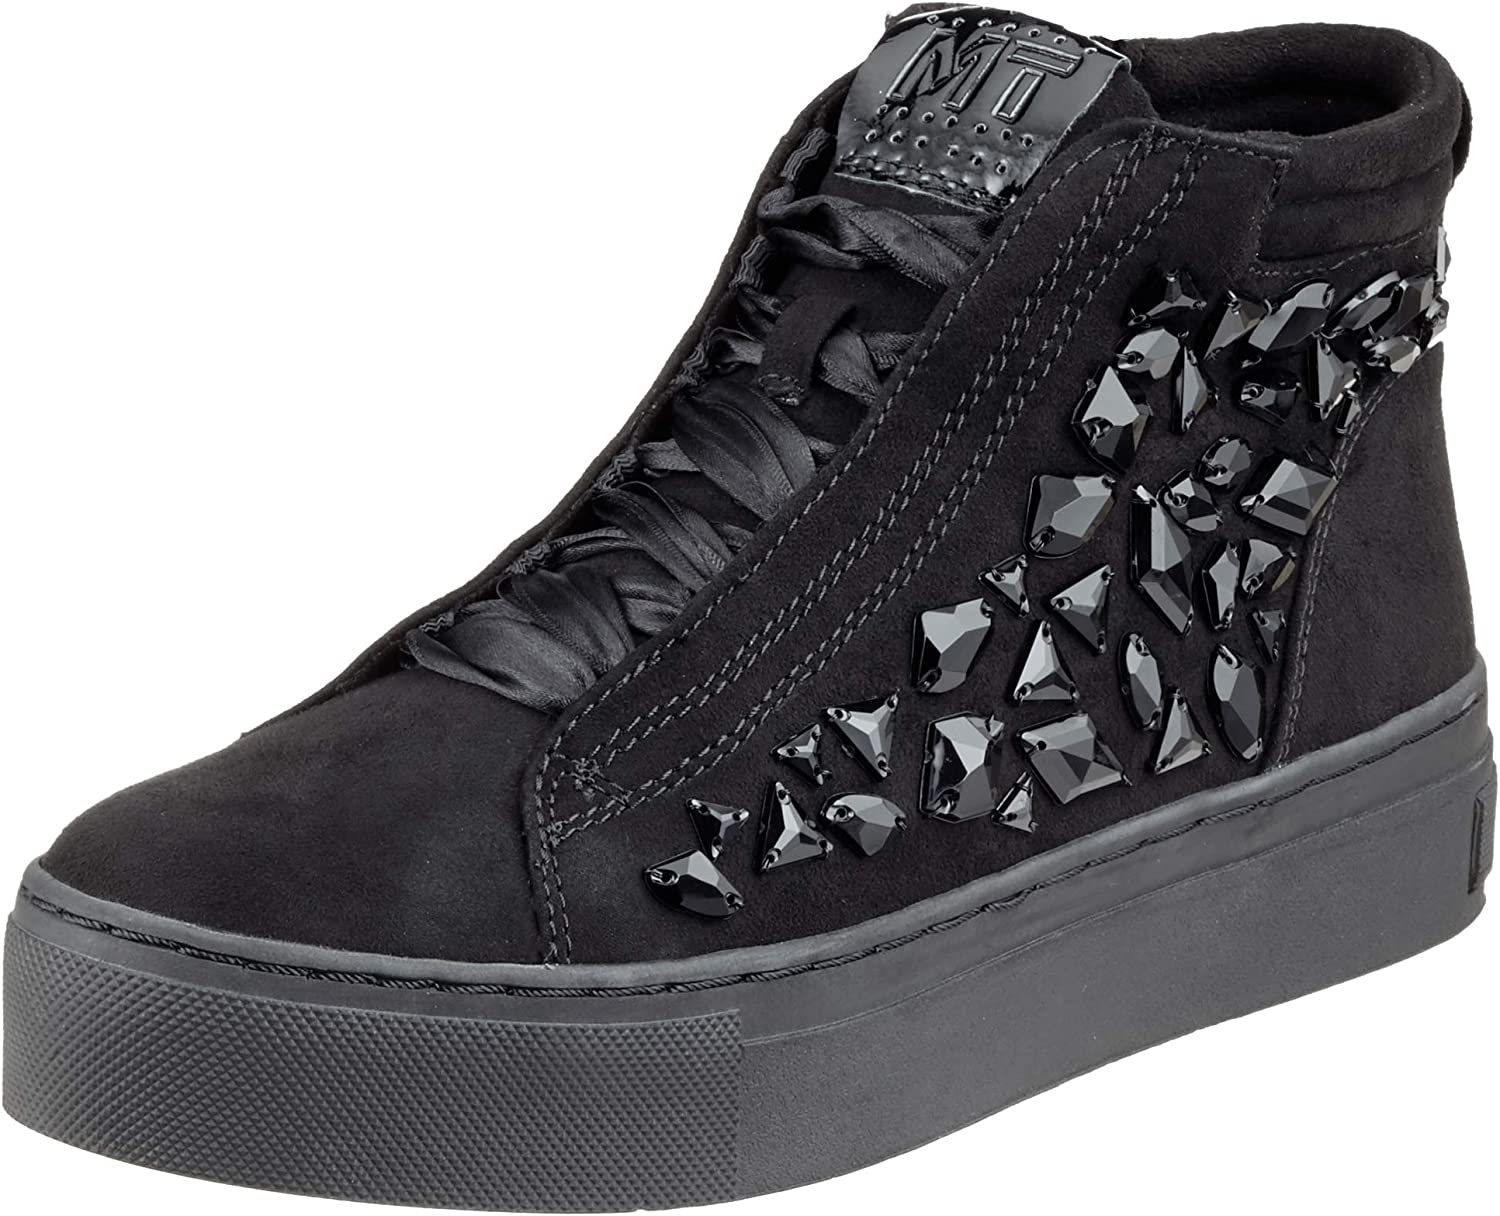 Marco Tozzi Women's 2-2-25257-21 098 Hi-Top Trainers